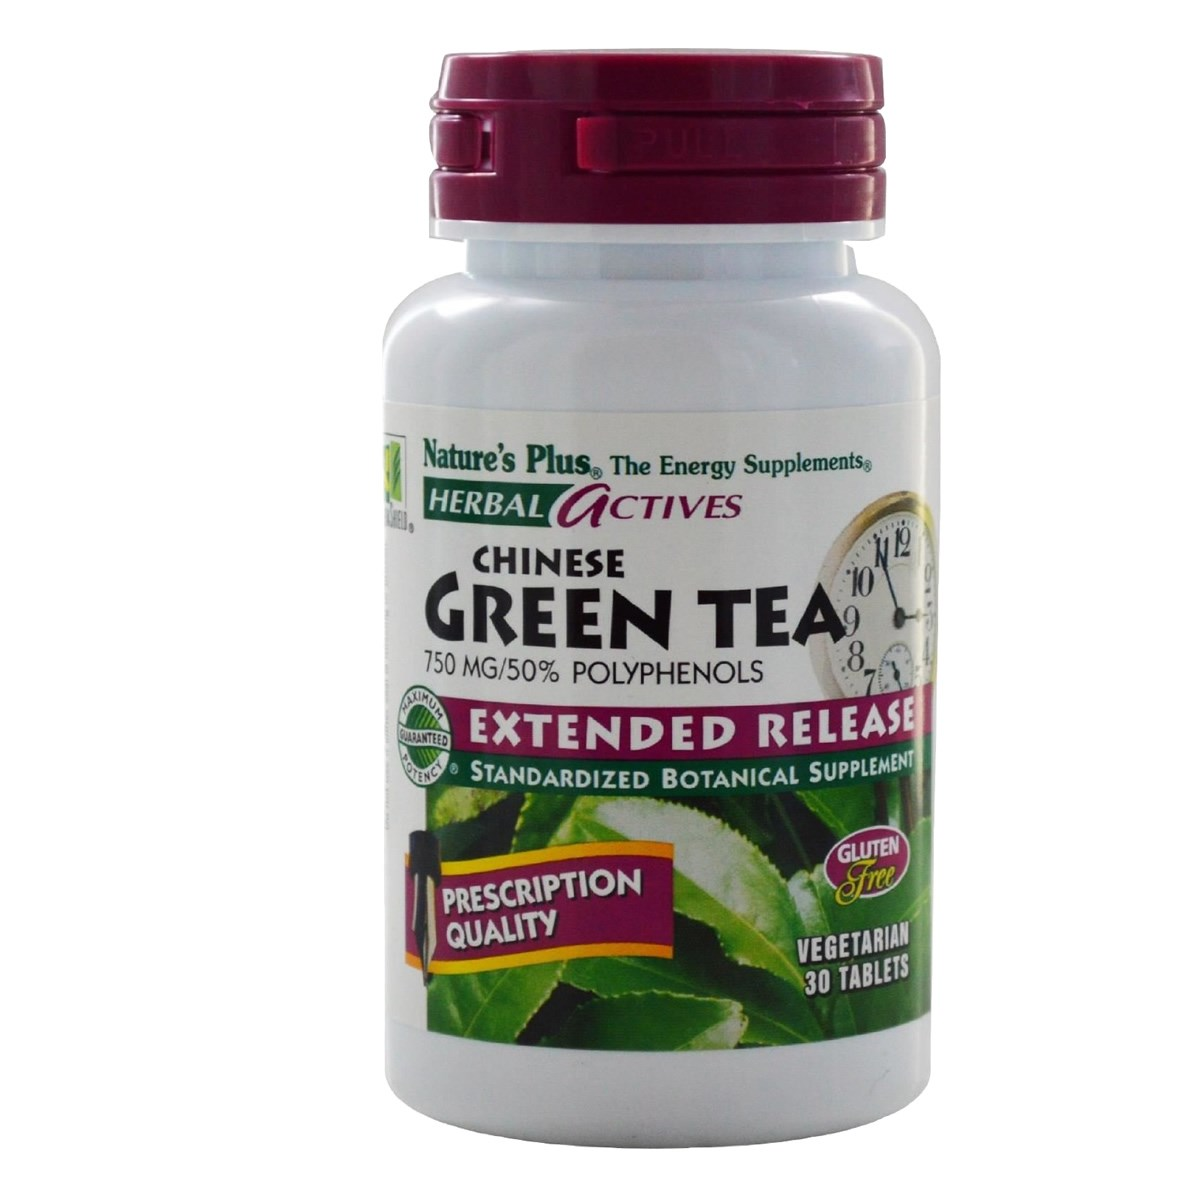 Natures Plus Herbal Actives Chinese Green Tea 750 mg Extended Release Tablets